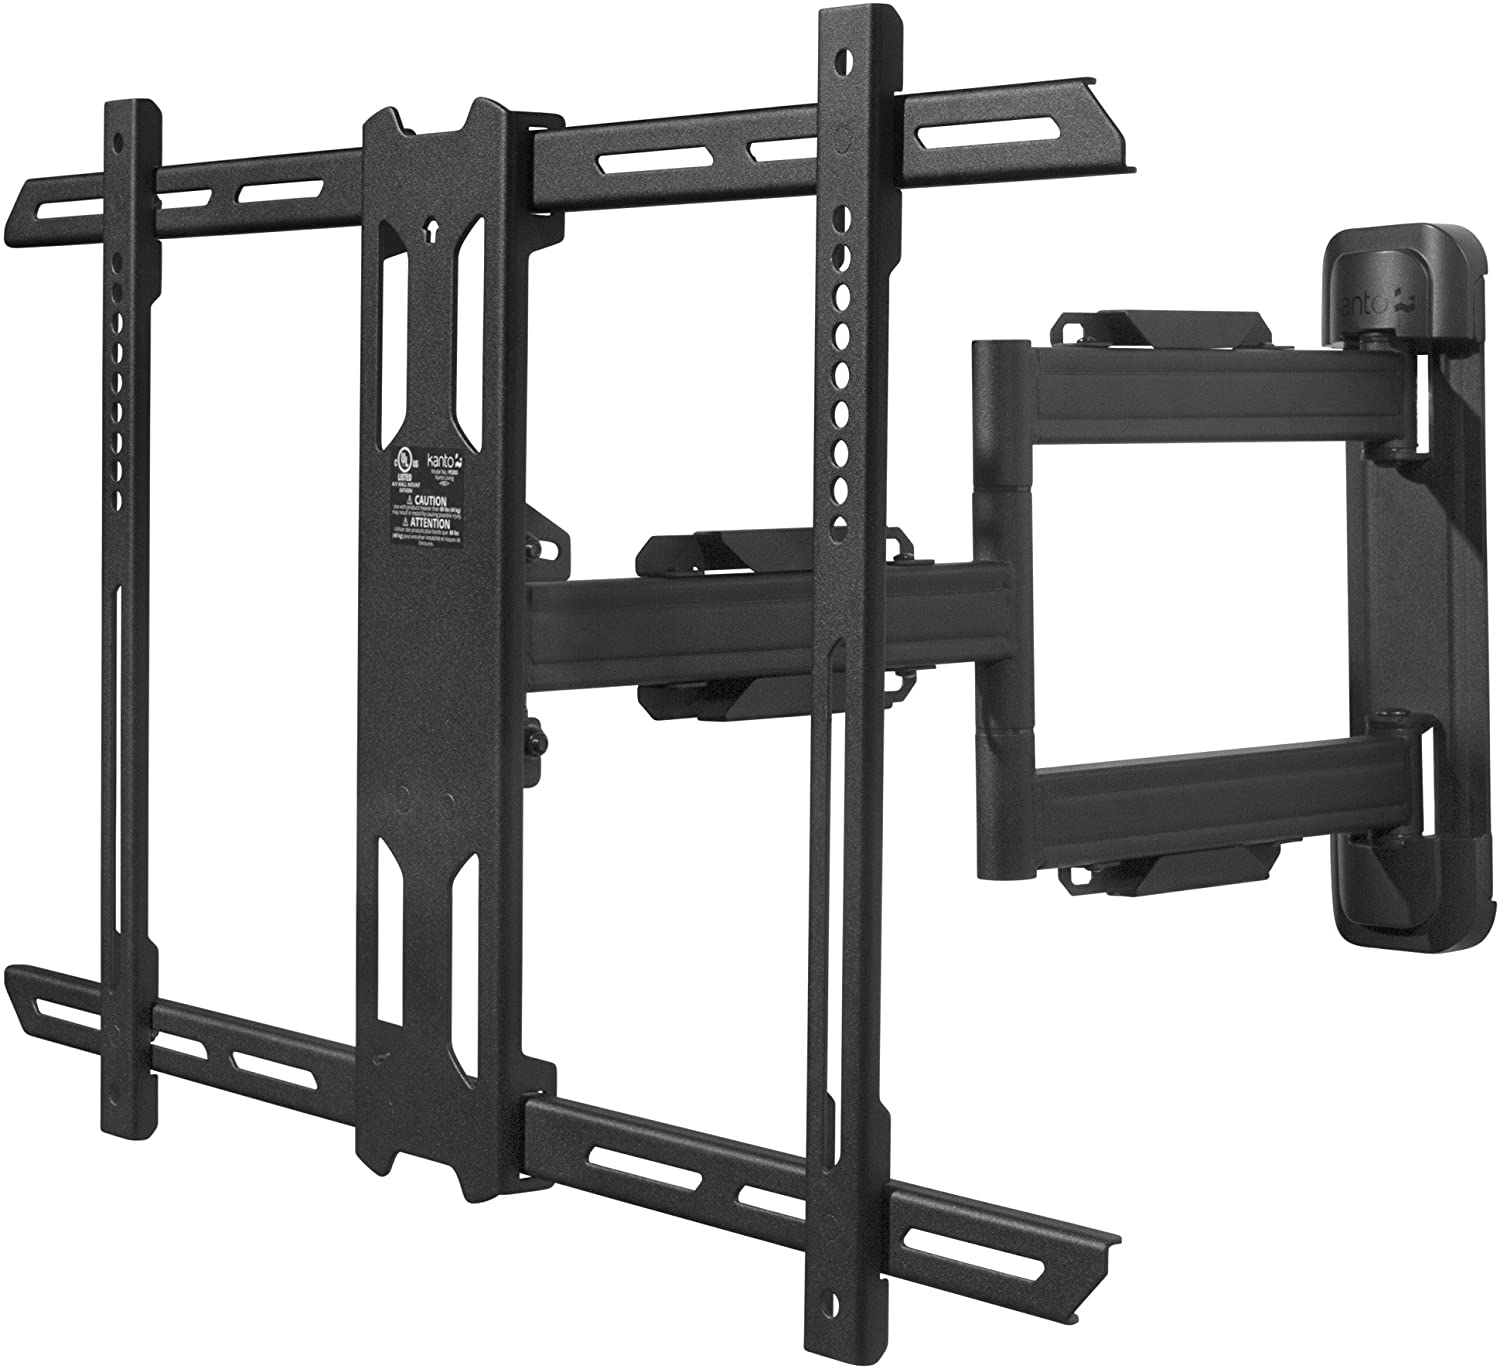 Kanto PS350 Full Motion Articulating TV Wall Mount for 37-inch to 60-inch TVs | Low Profile & 22 Extension | VESA Compatible up to 600x400 | Black